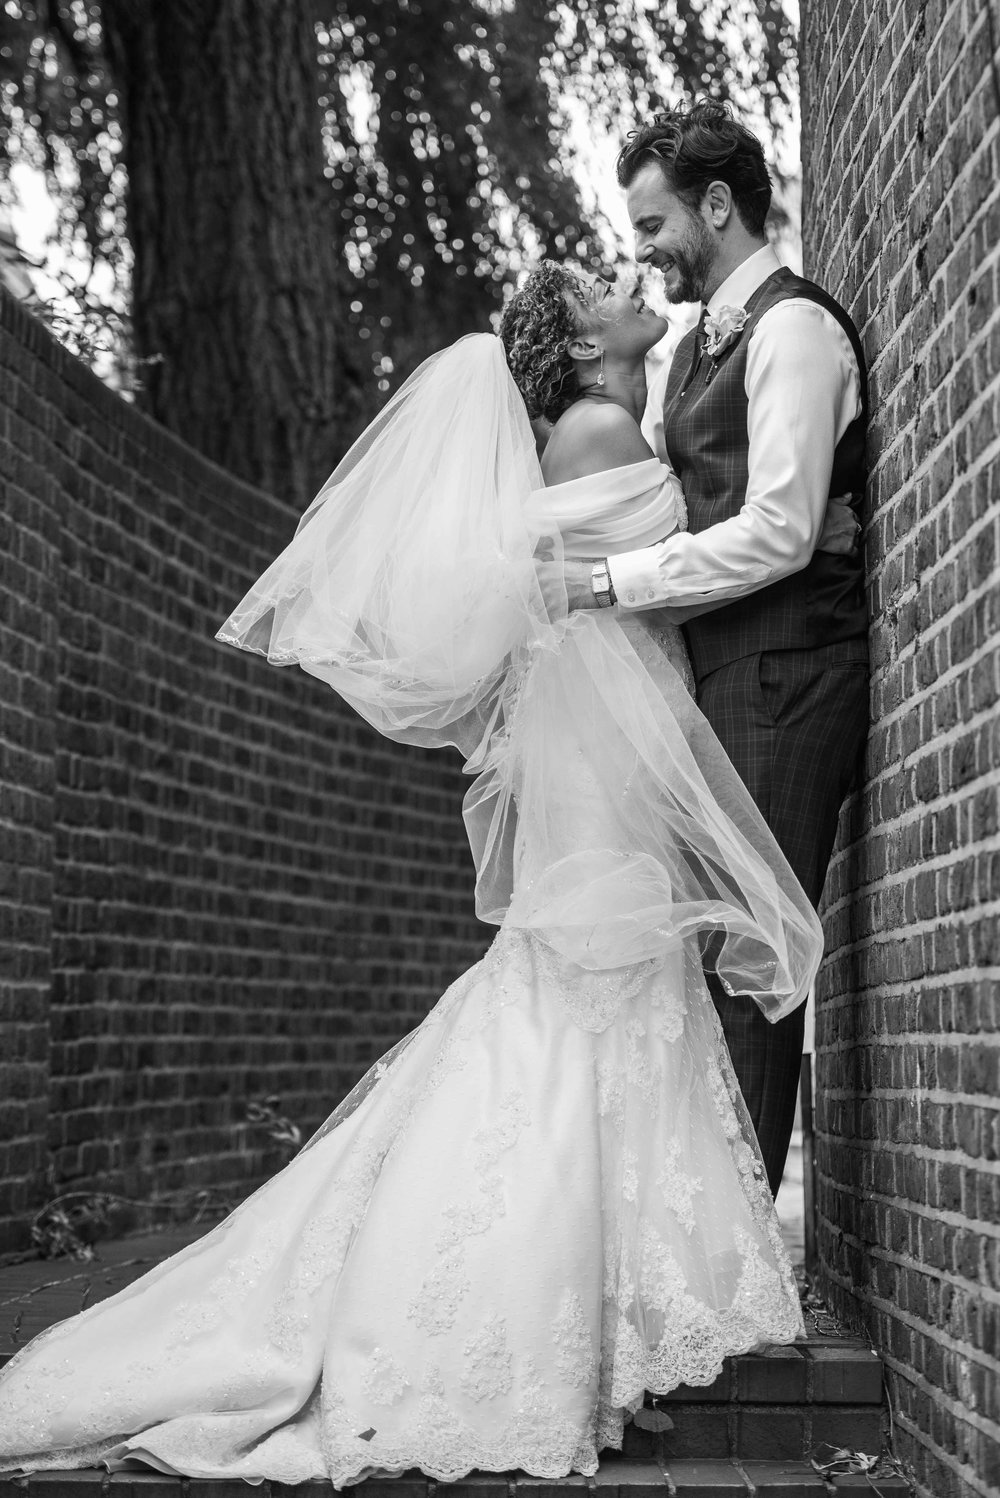 Leanne & James Wedding SP (144 of 236).jpg